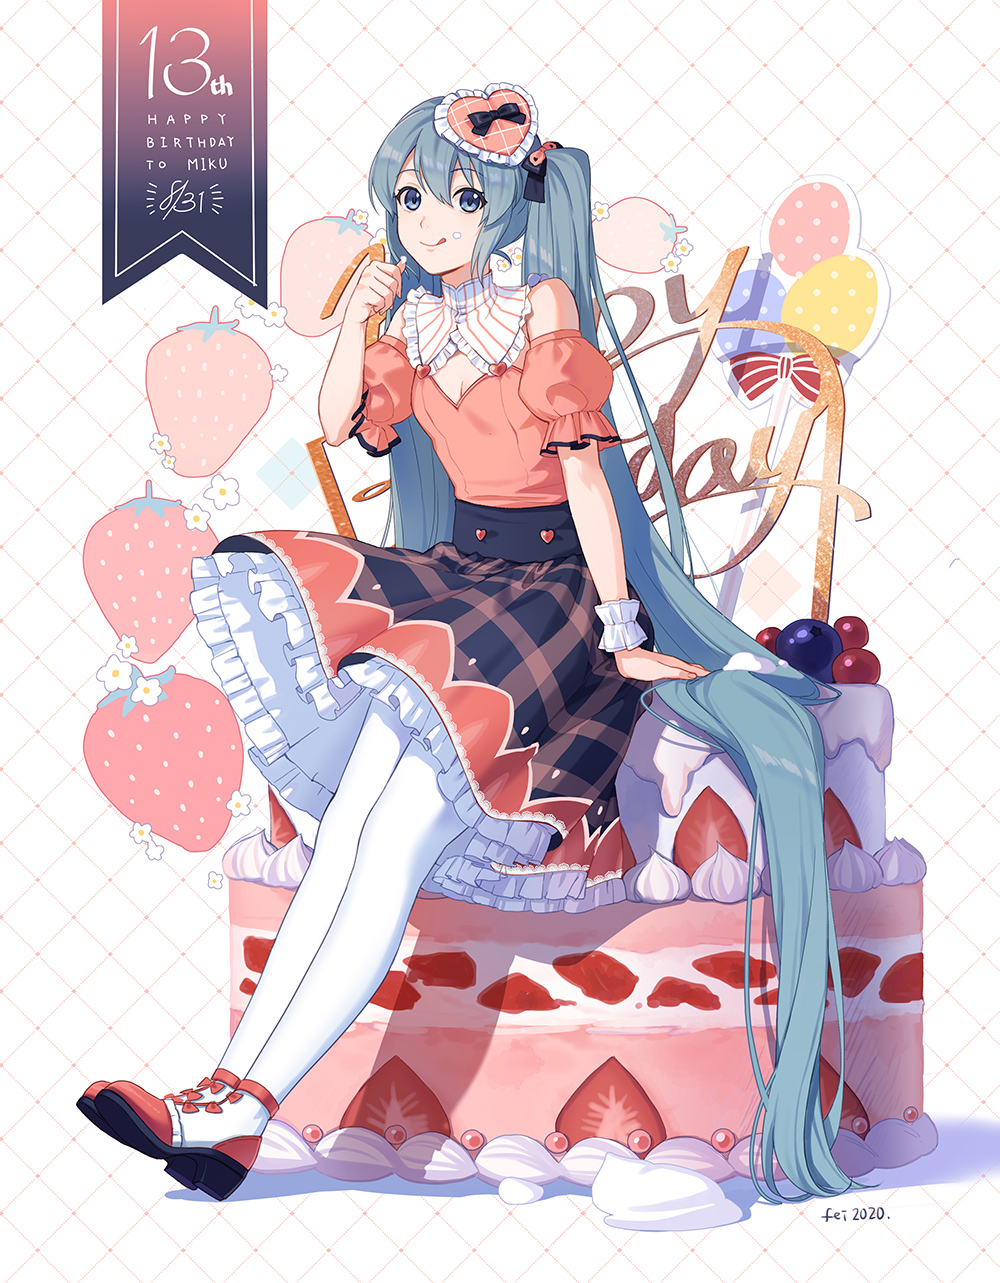 1girl :q arm_support black_bow black_skirt blue_eyes blue_hair bow brown_shirt brown_sleeves cake character_name chinese_commentary closed_mouth commentary detached_sleeves fen_renlei food food_on_face food_on_finger frilled_skirt frills fruit full_body hair_bow happy_birthday hatsune_miku heart highres long_hair pantyhose plaid plaid_skirt puffy_short_sleeves puffy_sleeves red_footwear shadow shirt shoes short_sleeves signature single_wrist_cuff sitting skirt sleeveless sleeveless_shirt smile solo strawberry tongue tongue_out twintails very_long_hair vocaloid white_background white_legwear wrist_cuffs